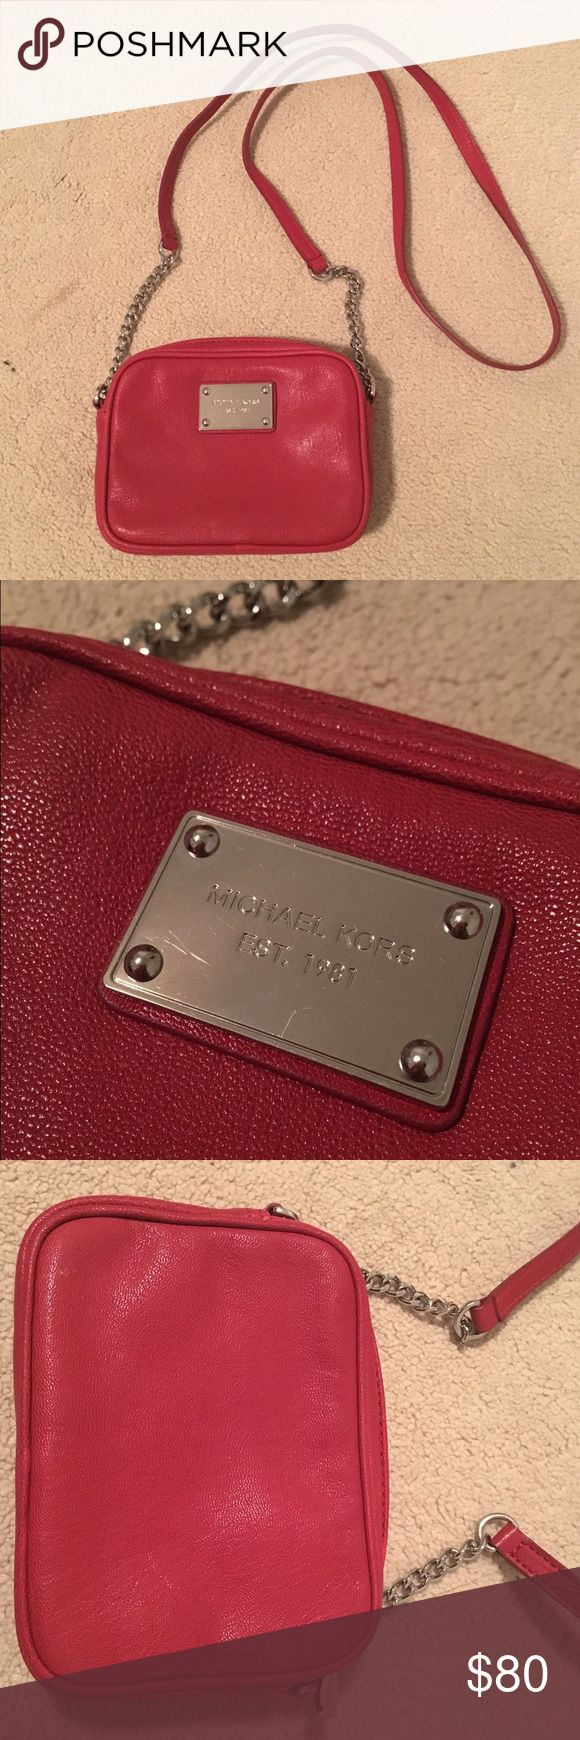 "MICHAEL KORS Jet Set Crossbody Bag ❤️ Authentic Michael Kors Jet Set crossbody bag in red leather and silver hardware and chain. Worn only twice and in excellent like new condition! Interior pouch pocket, 3 card slots, and full zipper. Approx 7""L x 5""H x 1.5""W. This is the perfect small purse for holding daily essentials like cell phone, card/cash, lipstick & more! It can also be worn as a clutch when shoulder strap is tucked in! Michael Kors Bags Crossbody Bags"